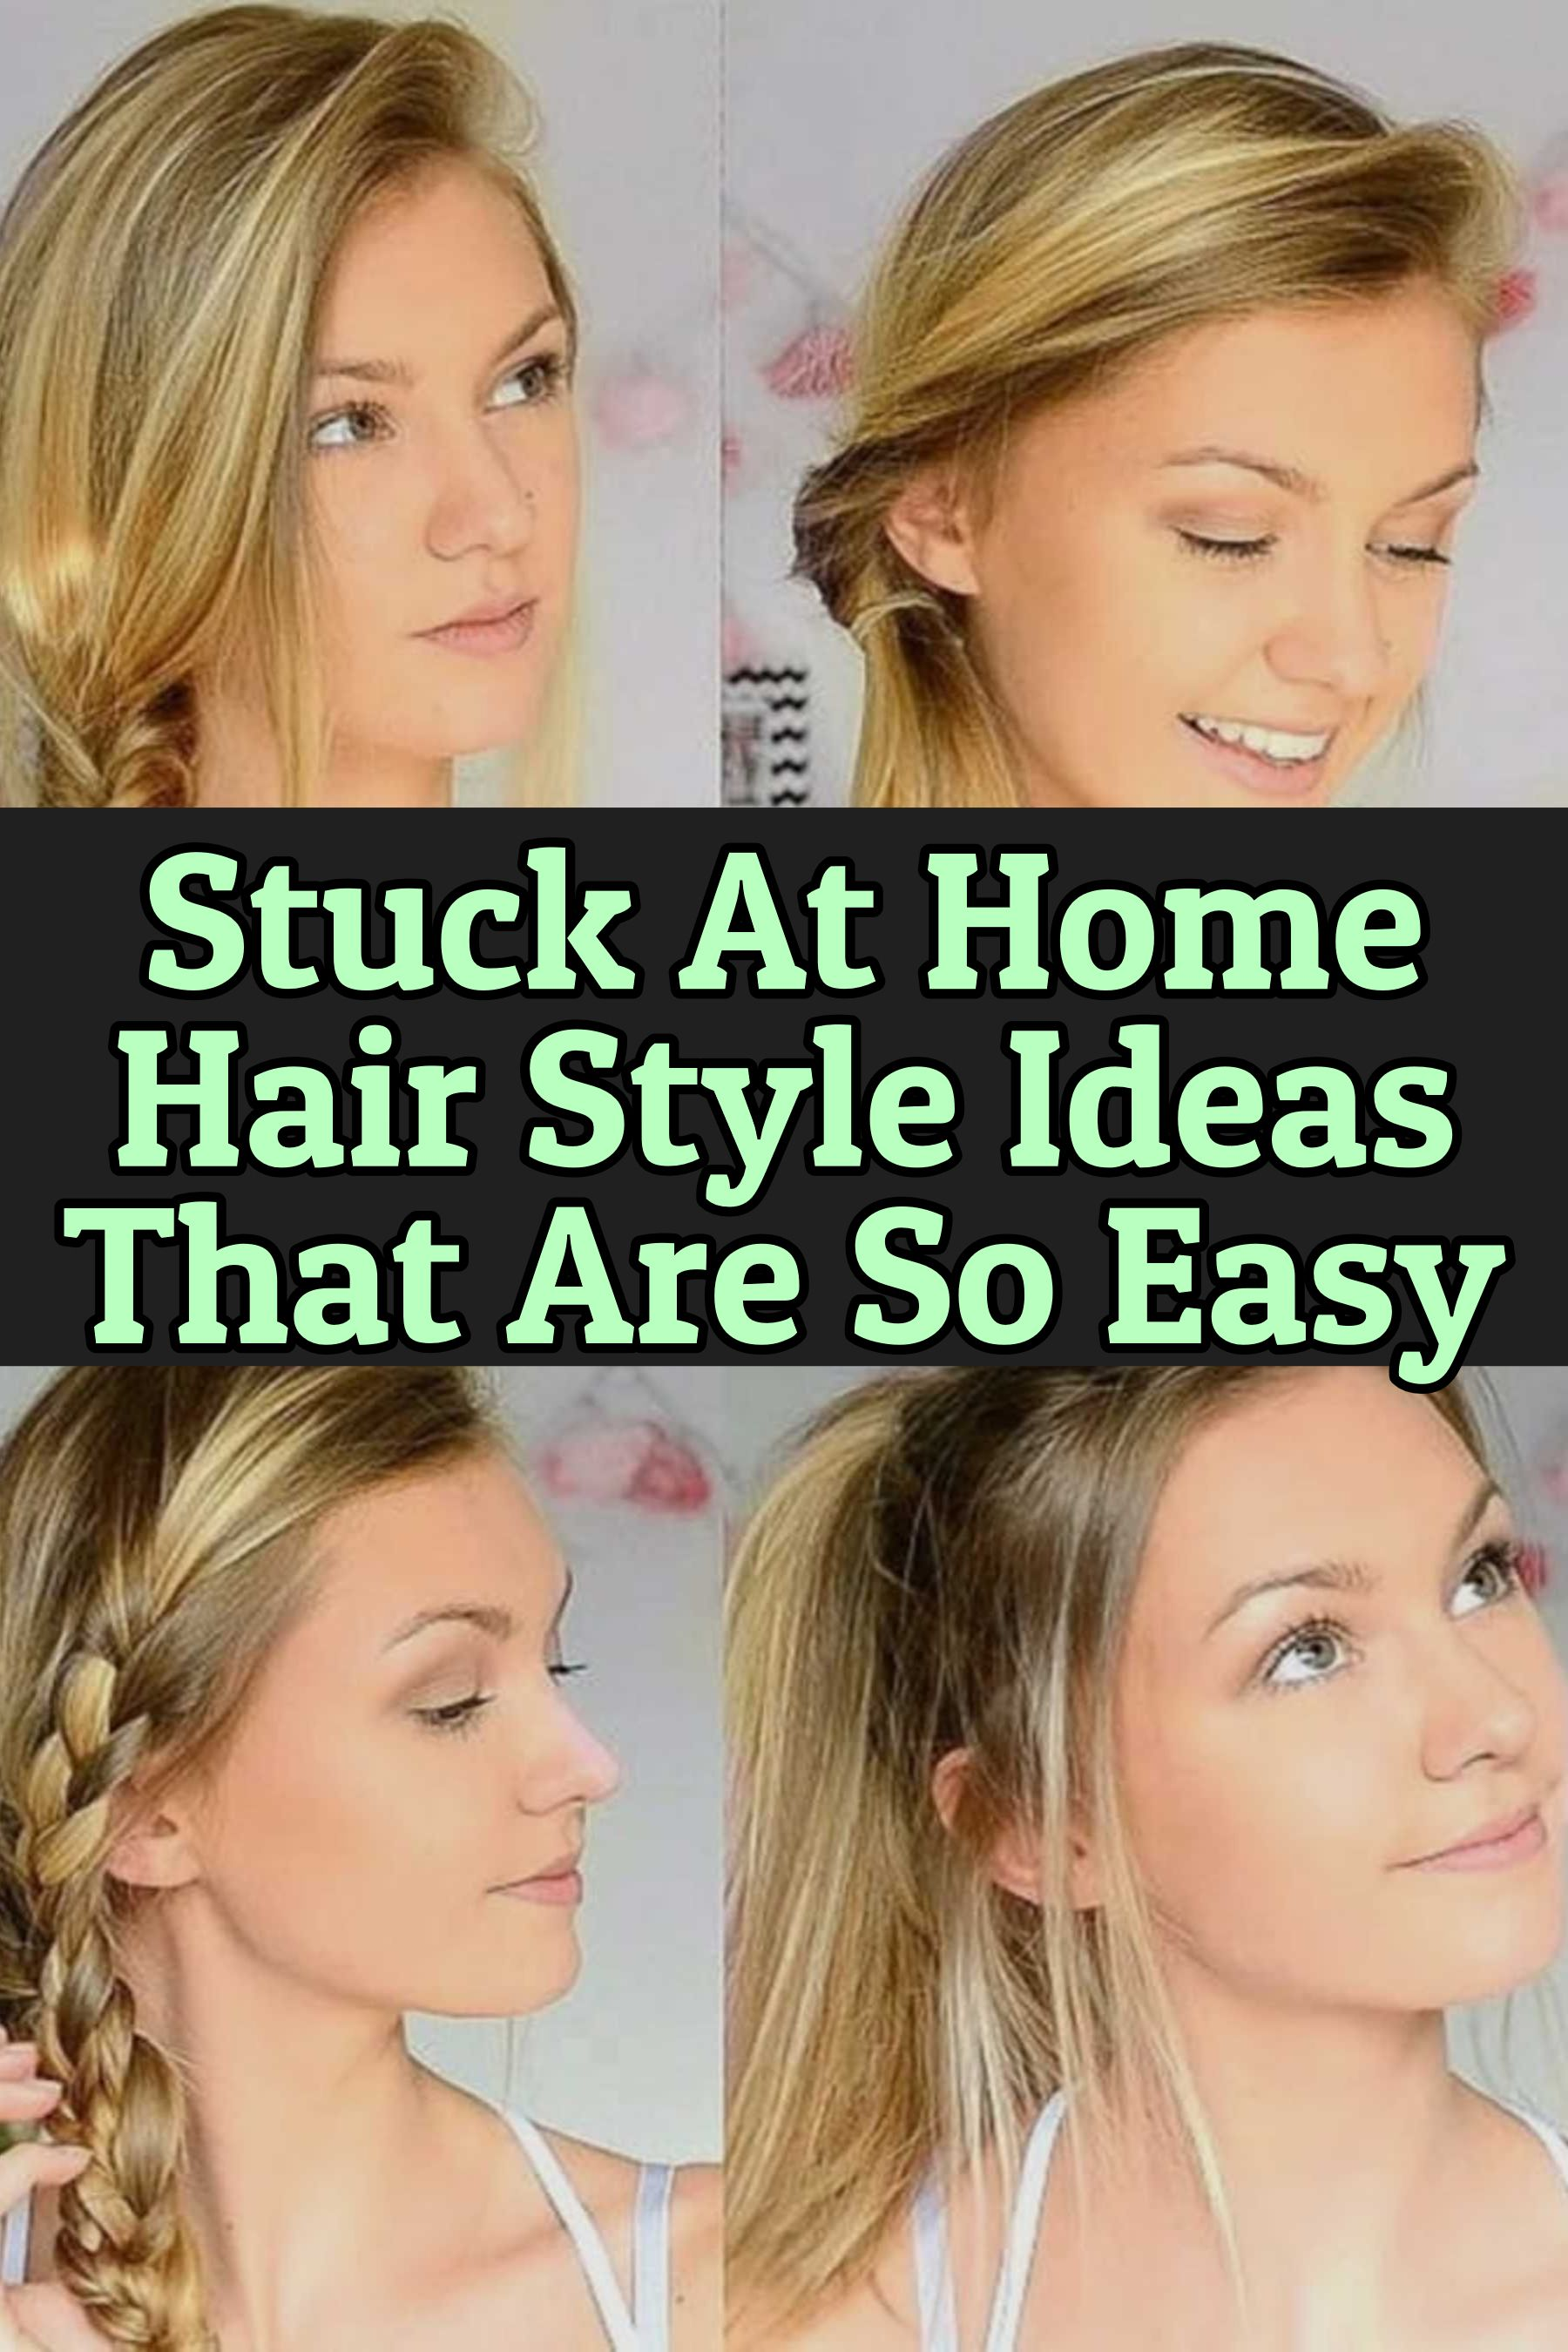 10 Easy Lazy Girl Hairstyle Ideas Step By Step Video Tutorials For Lazy Day Running Late Quick Hairstyles Clever Diy Ideas In 2020 Lazy Girl Hairstyles Lazy Hairstyles Easy Everyday Hairstyles